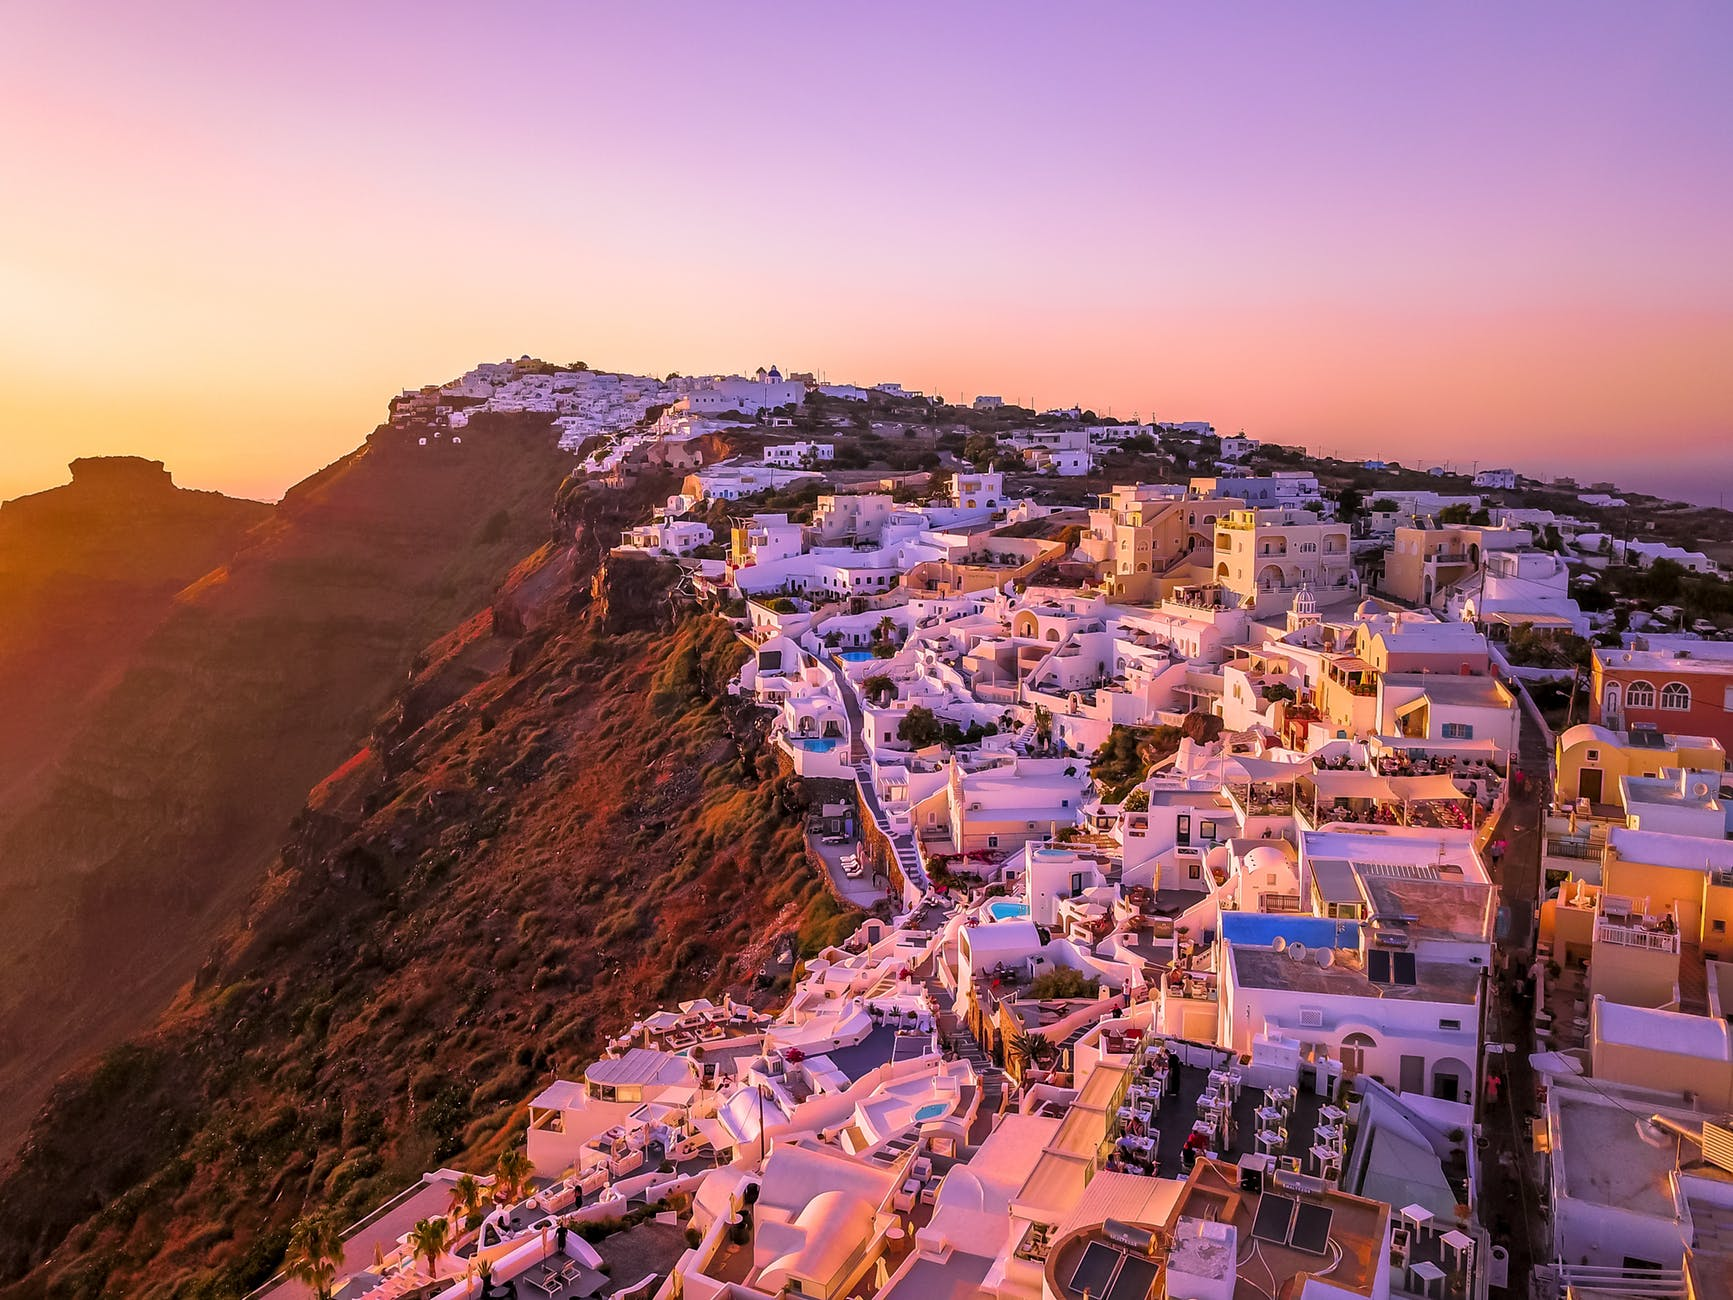 Greek city on a mountain at sunset.